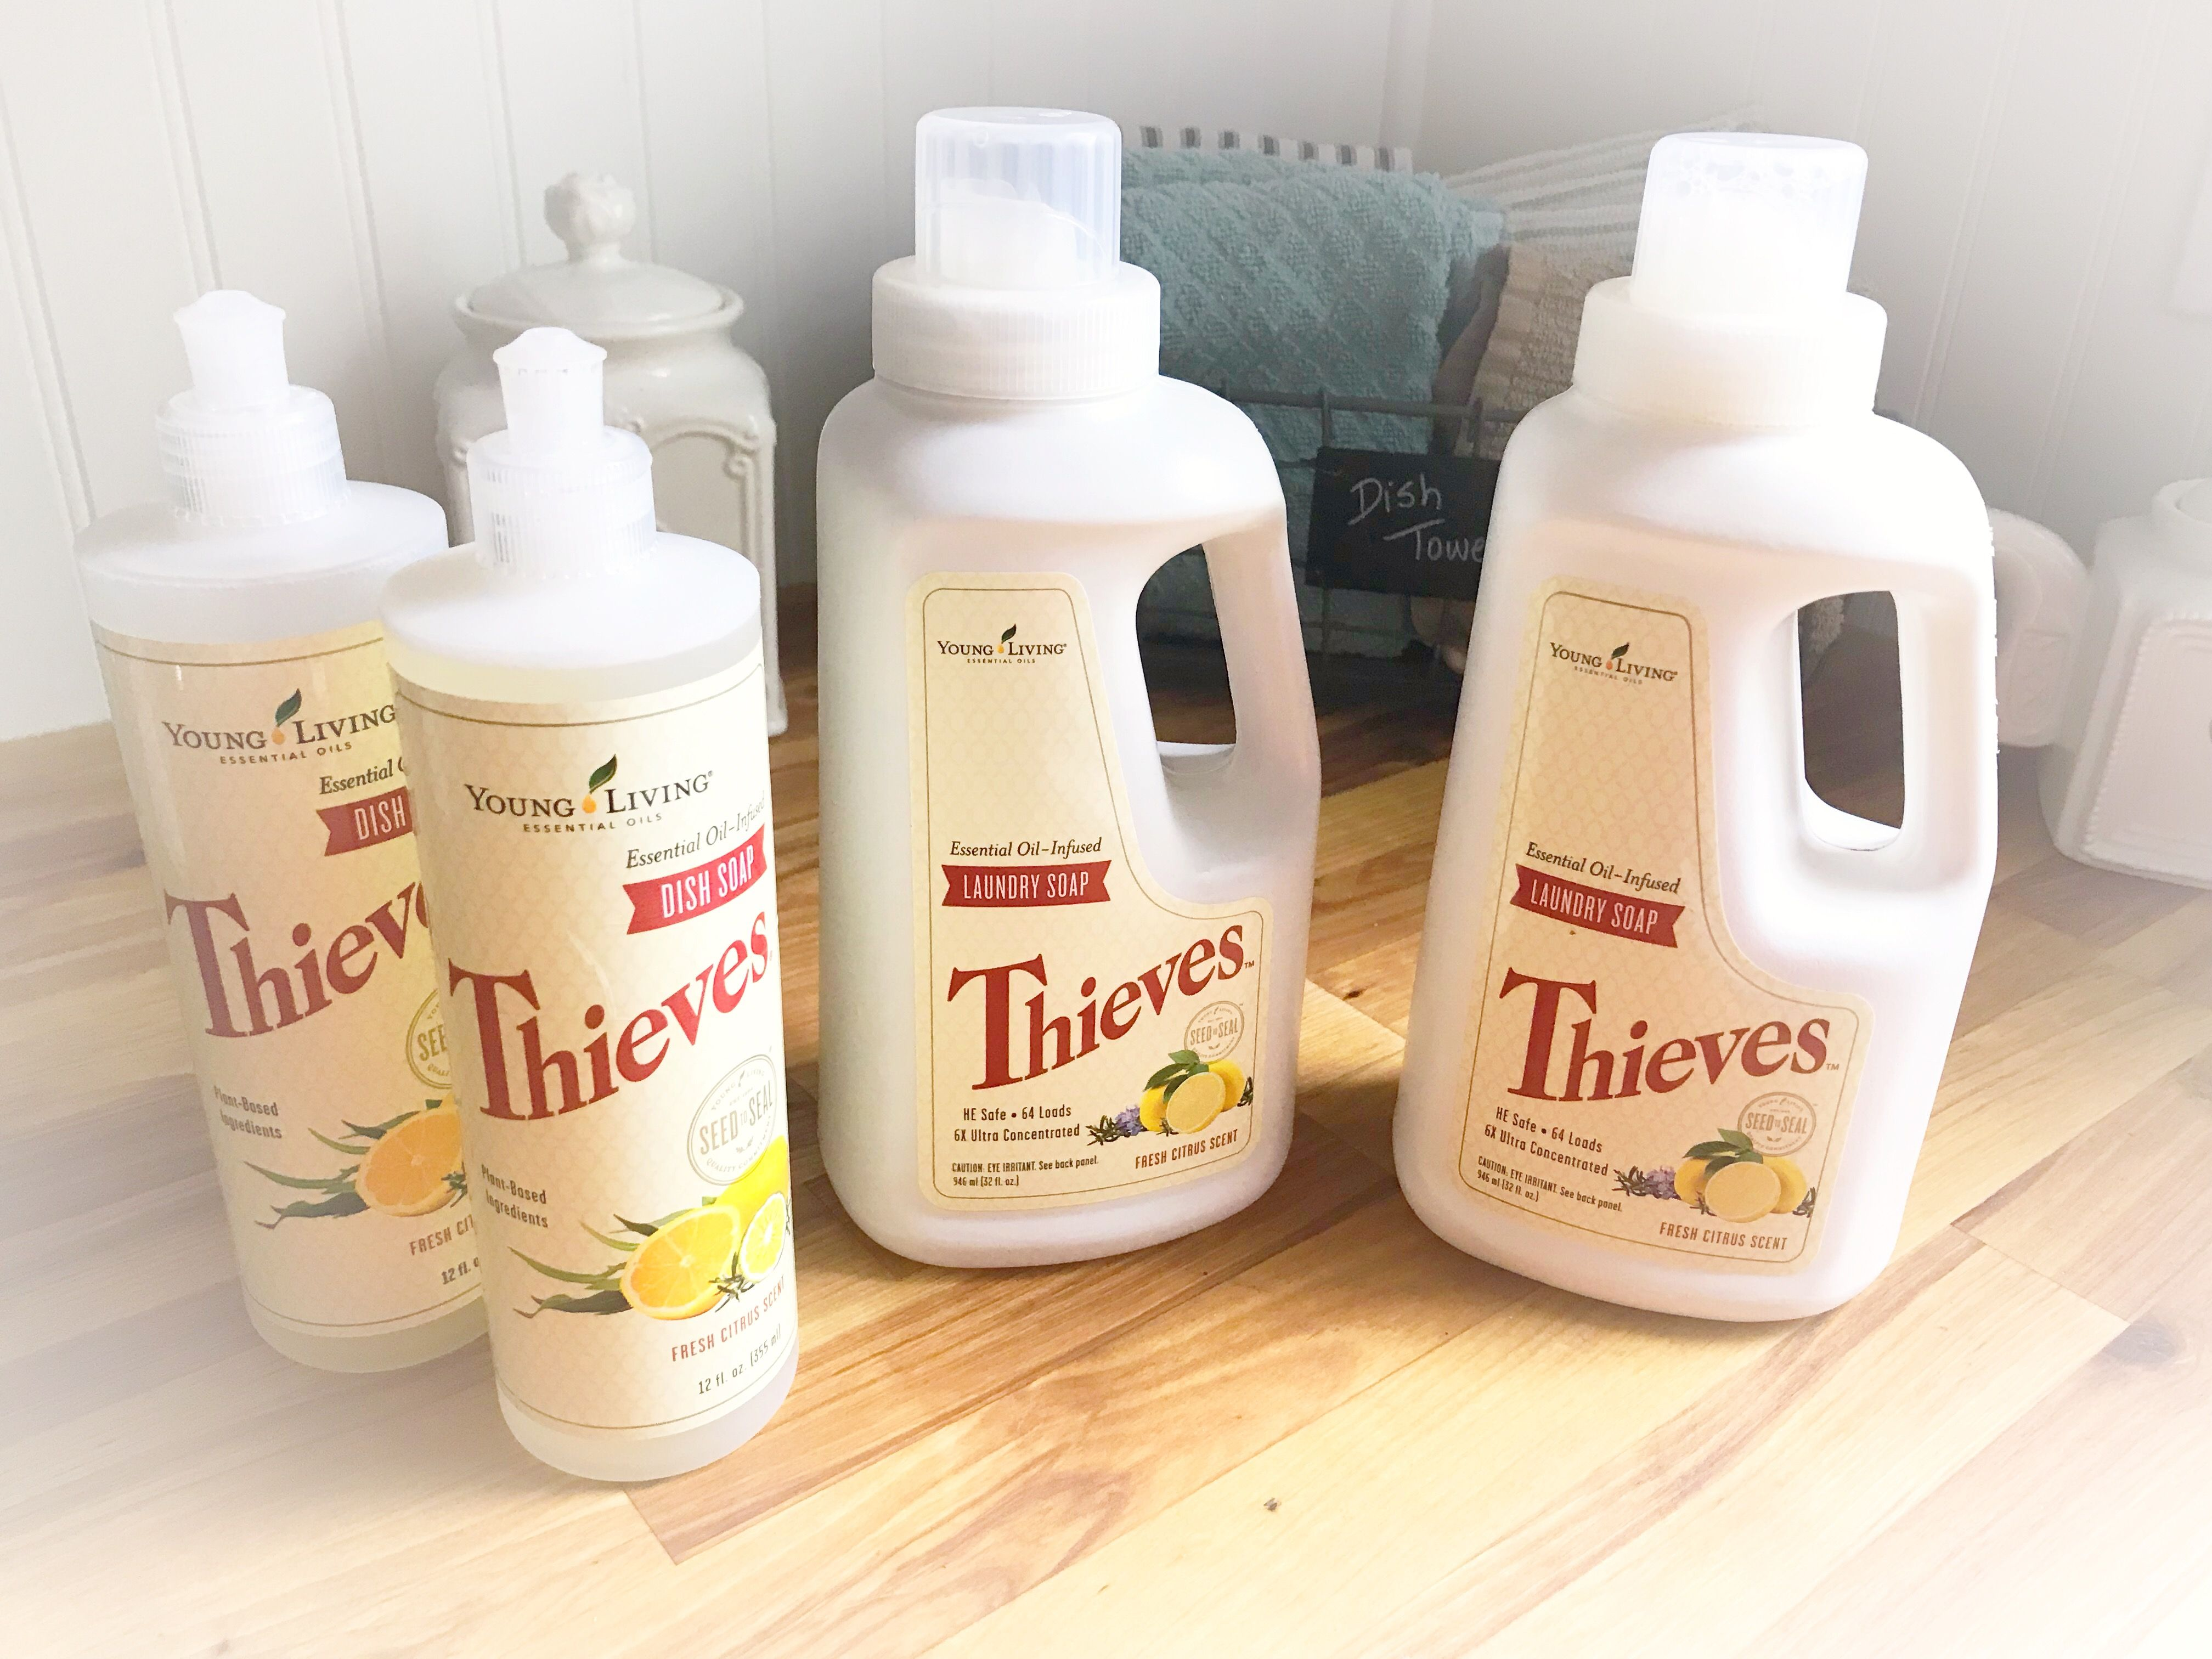 Just Split One Thieves Laundry Soap Into Two And One Thieves Dish